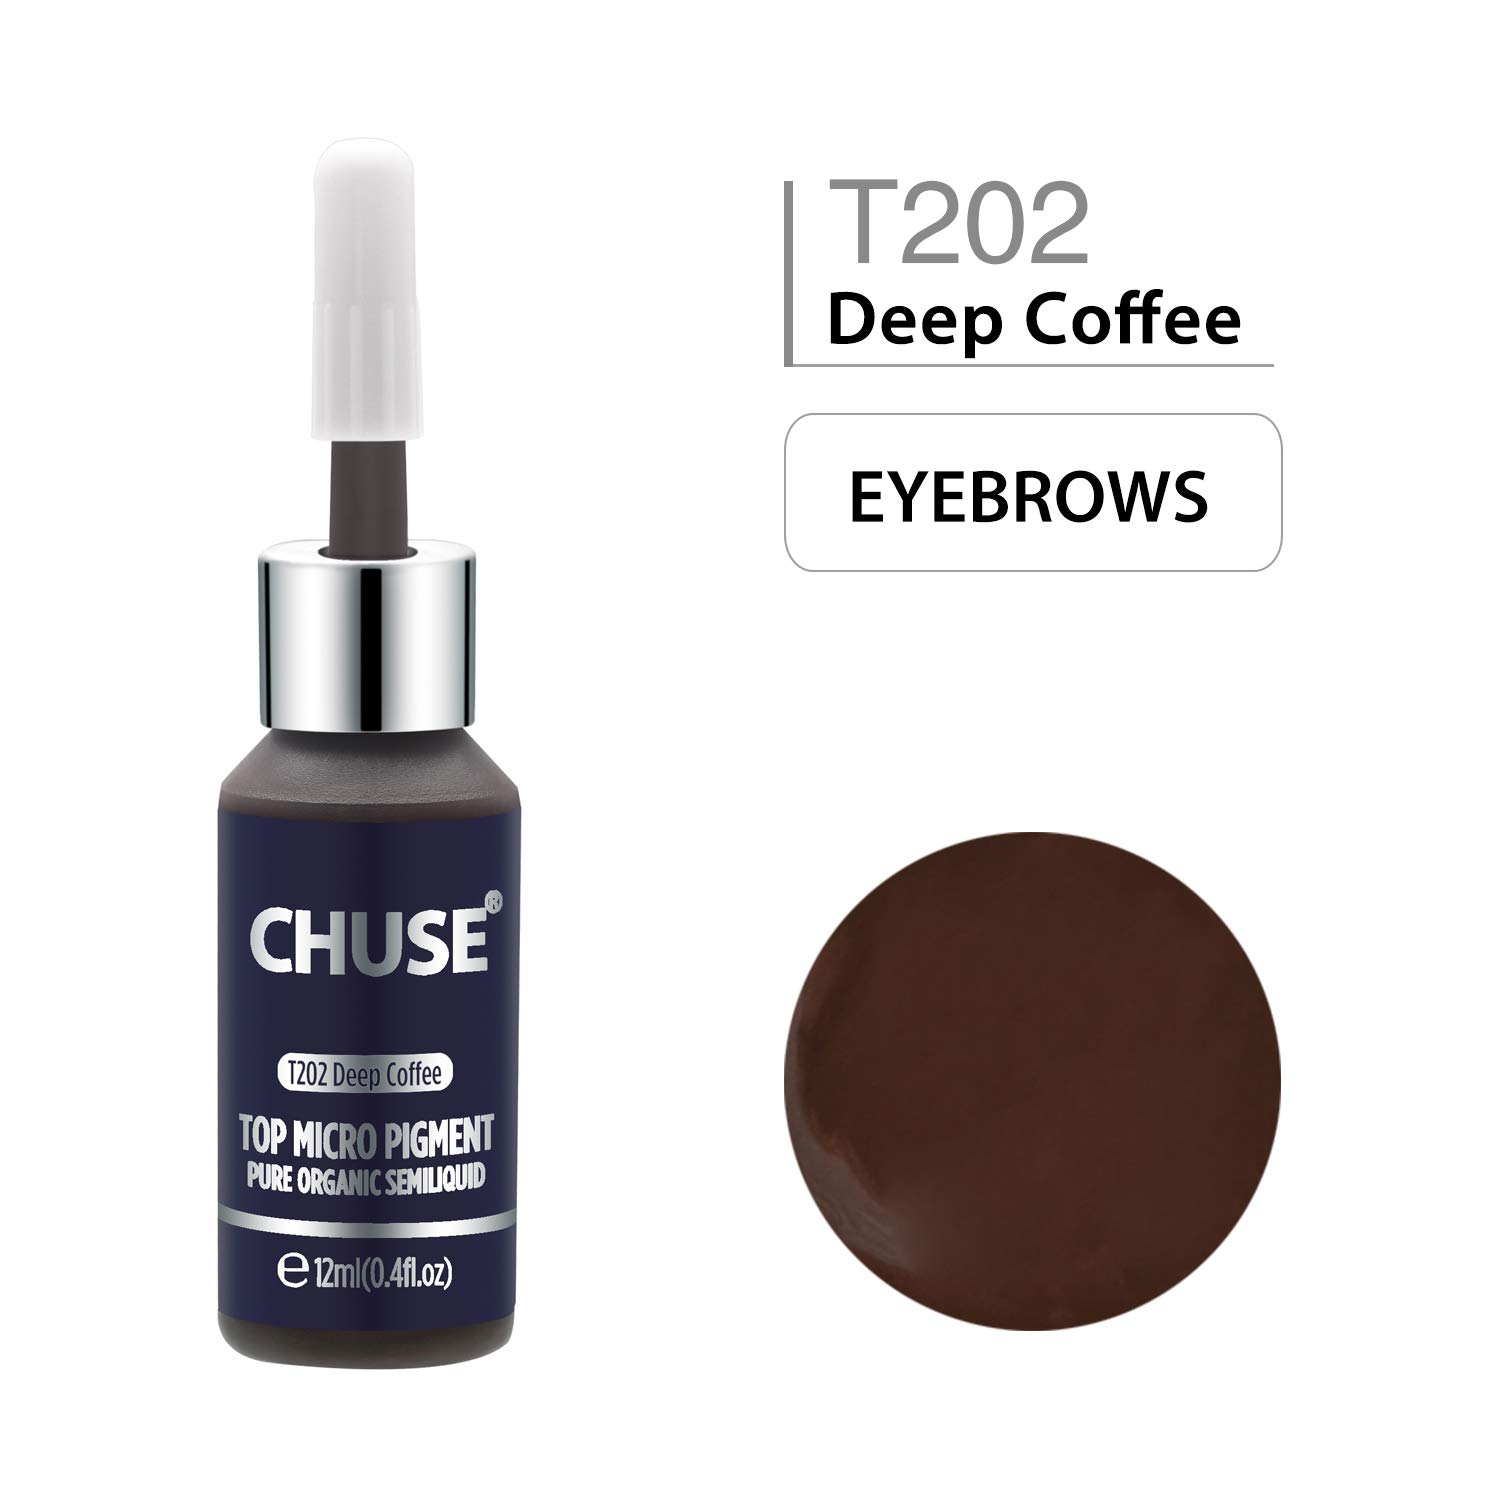 CHUSE T202 Microblading Micro Pigment Permanent Makeup Tattoo Ink Cosmetic Color Deep Coffee Passed SGS,DermaTest 12ml (0.4fl.oz)